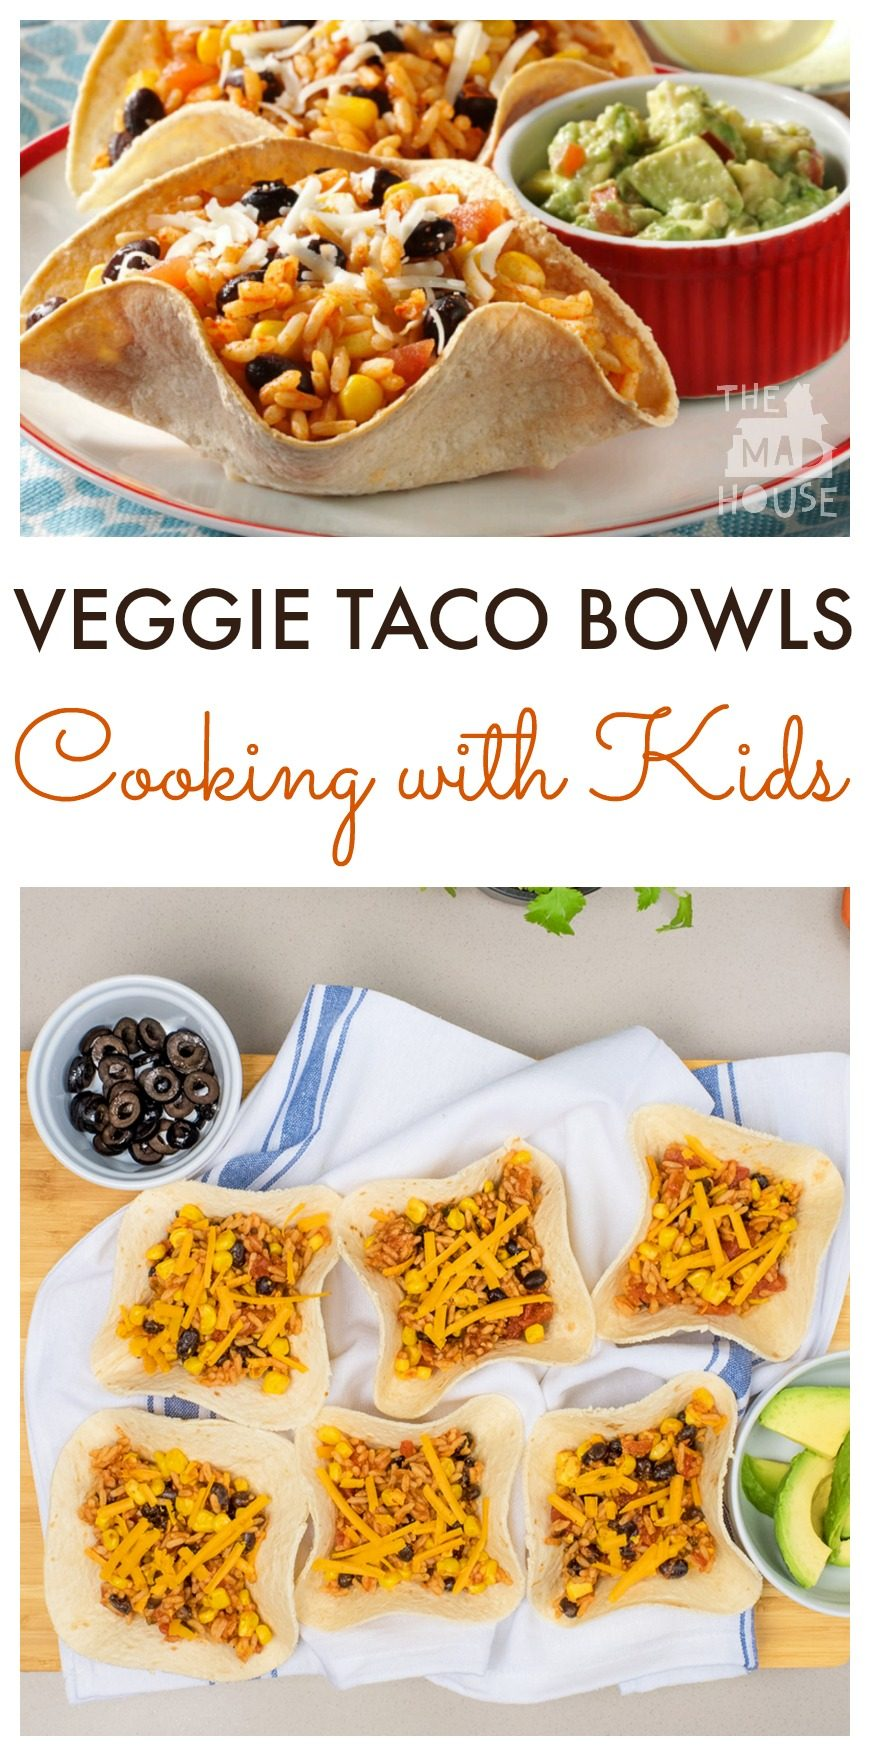 These Veggie Taco Bowls are super simple to make and perfect for cooking with the kids. A simple, delicious and versatile meat-free family meal